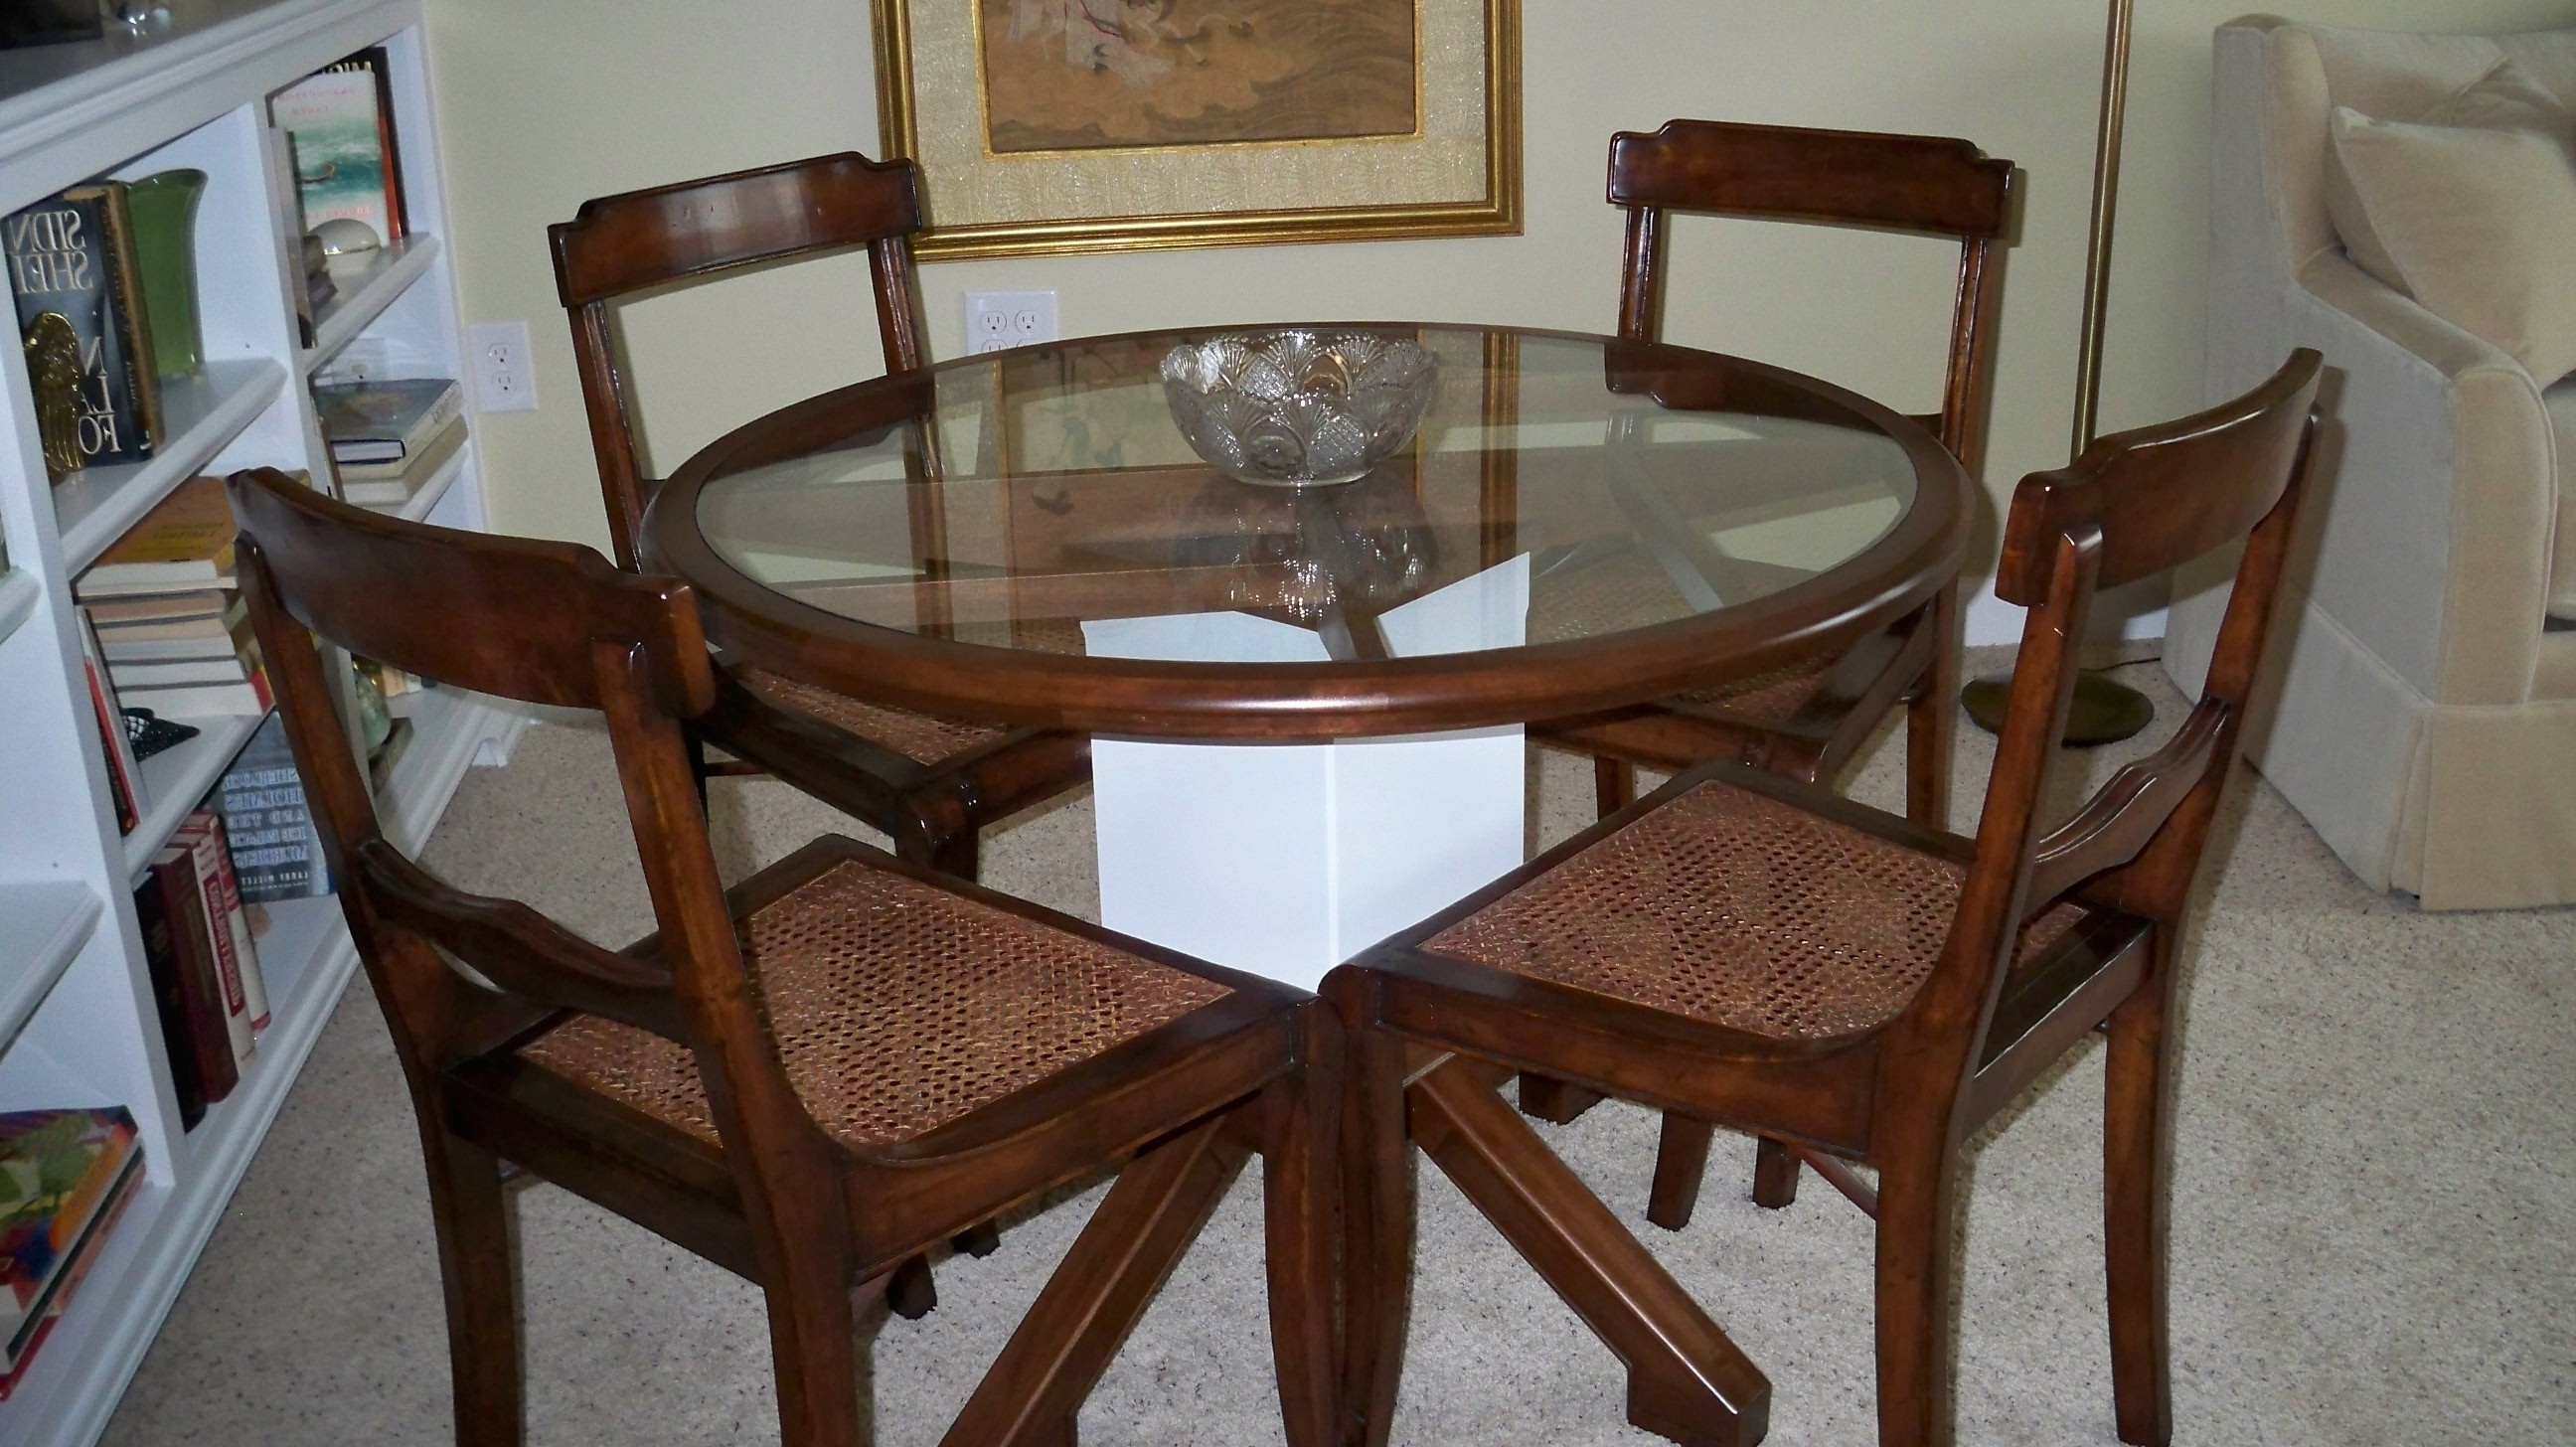 Glass Dining Tables With Wooden Legs In Most Recently Released Round Glass Table With Brown Wooden Frame And White Wooden Legs (View 12 of 25)